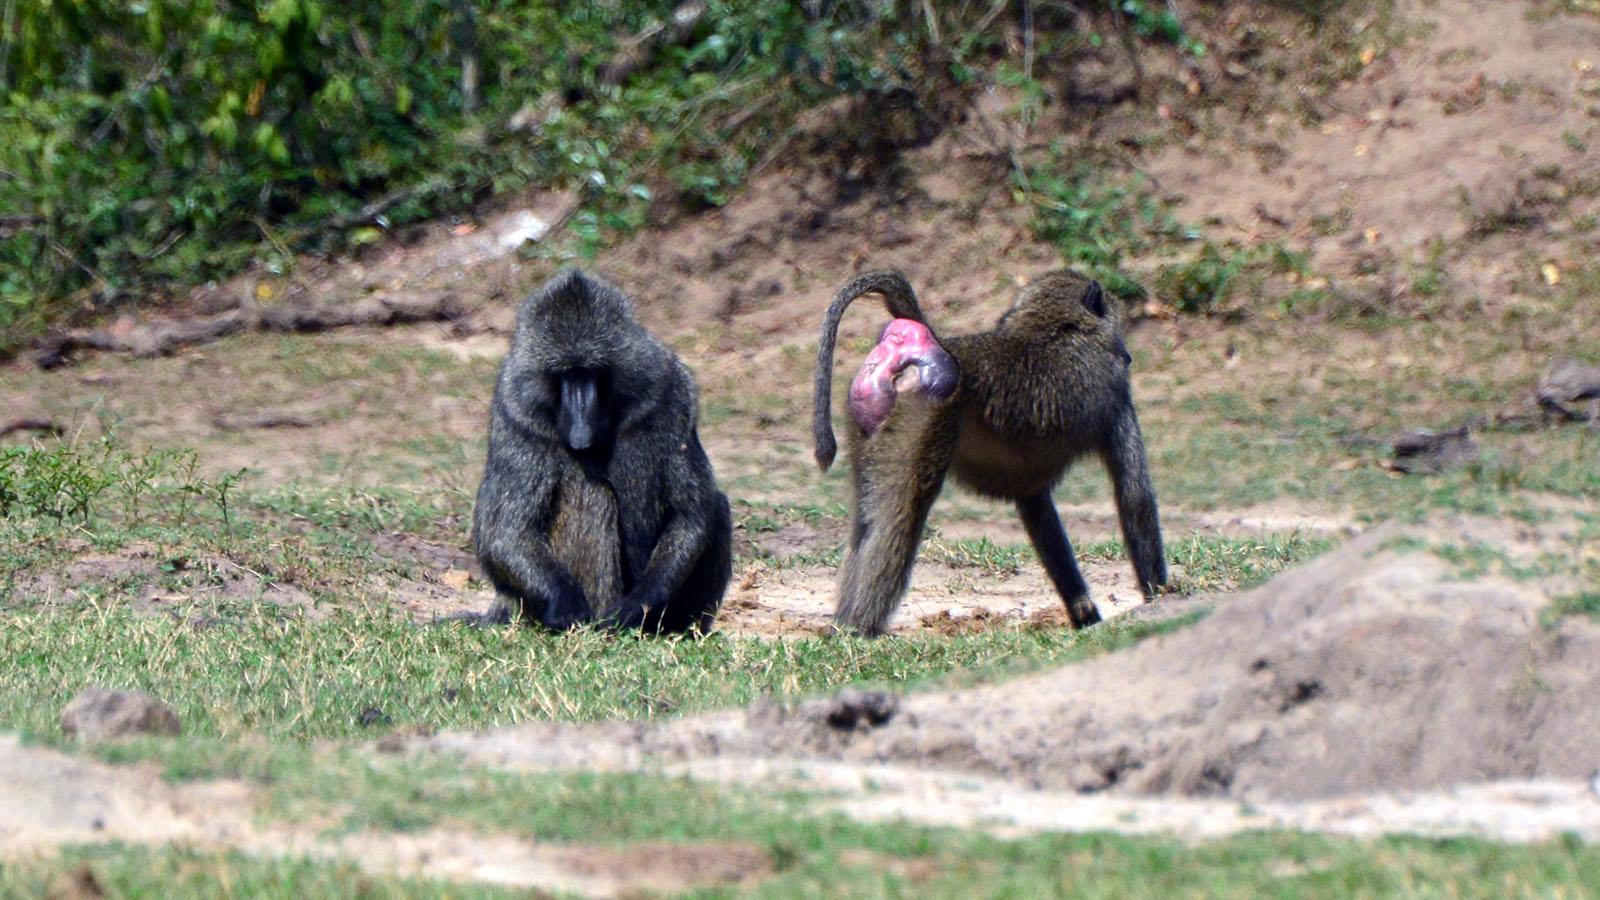 Baboons: The Monkeys With the Scarlet Booties | HowStuffWorks